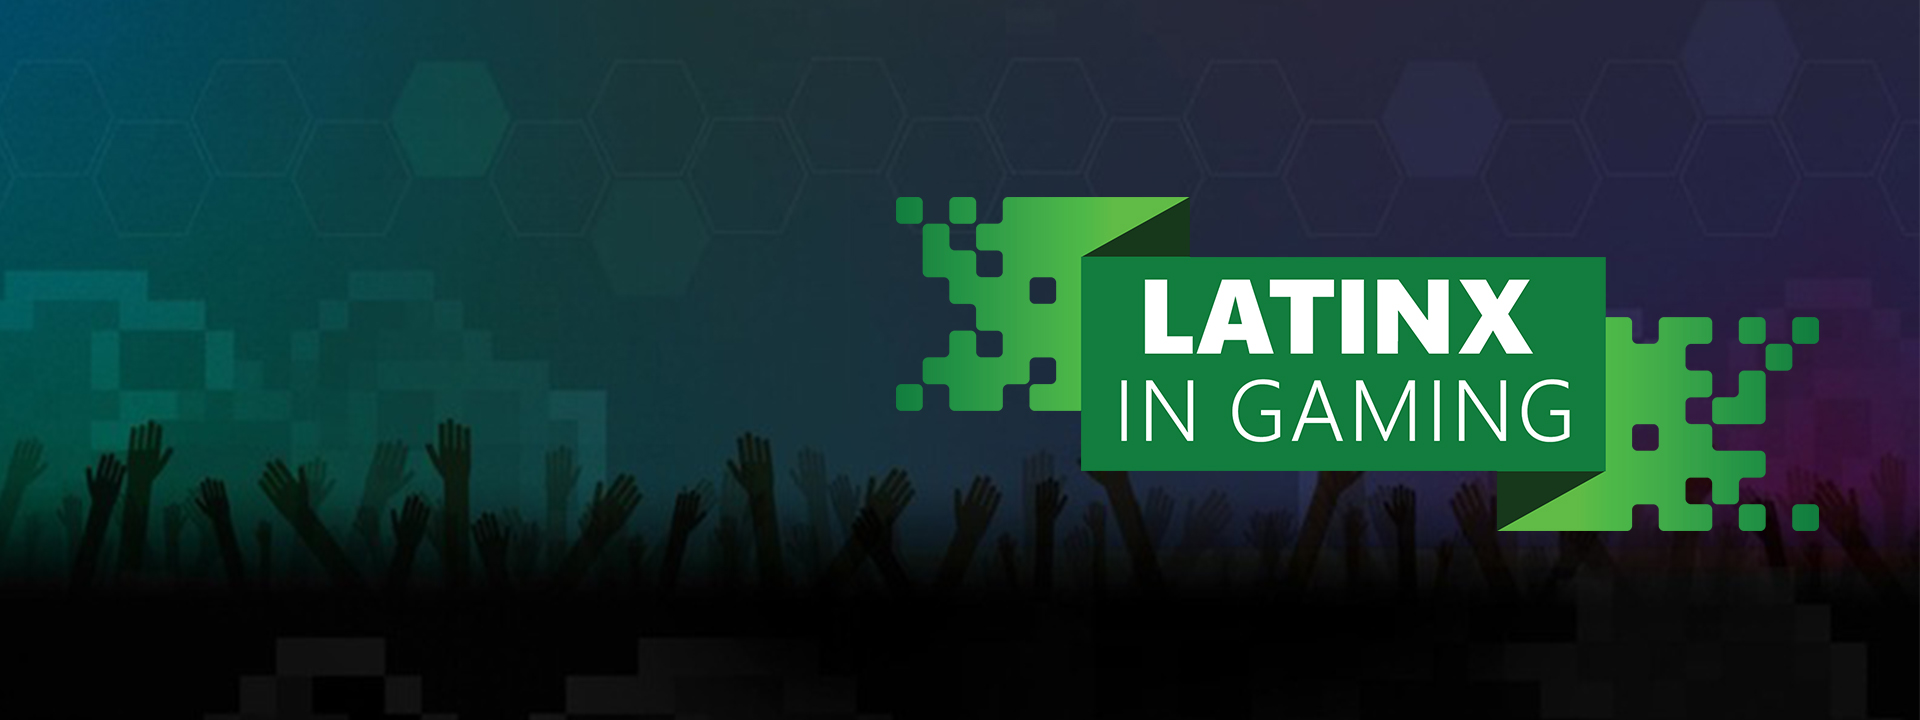 Celebrando o Latinx no Gaming Event Logo